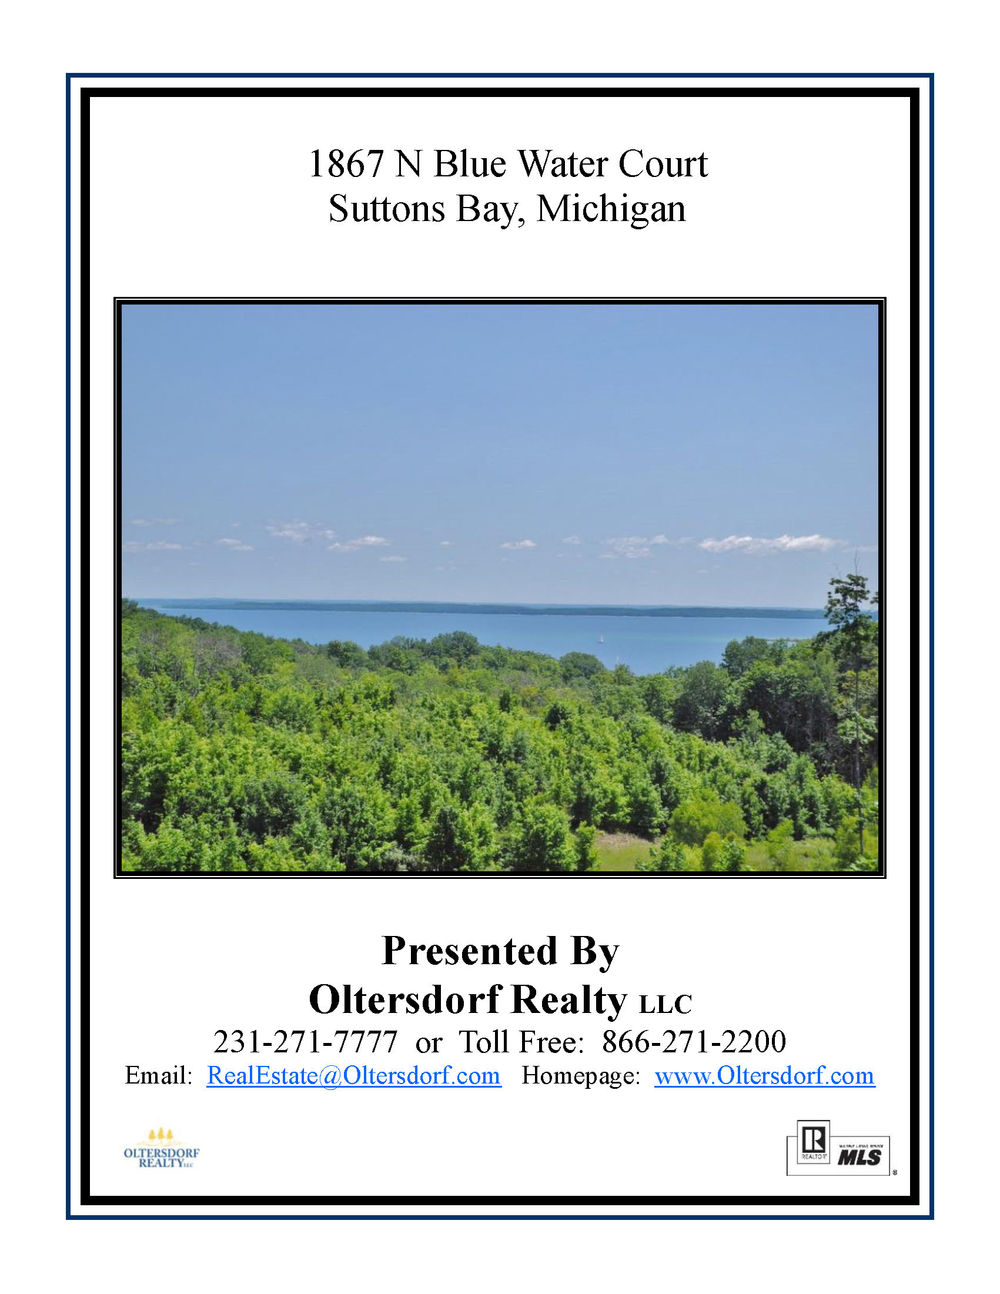 1867 N Blue Water Ct, Suttons Bay, Oltersdorf Realty Marketing Packet (1).jpg